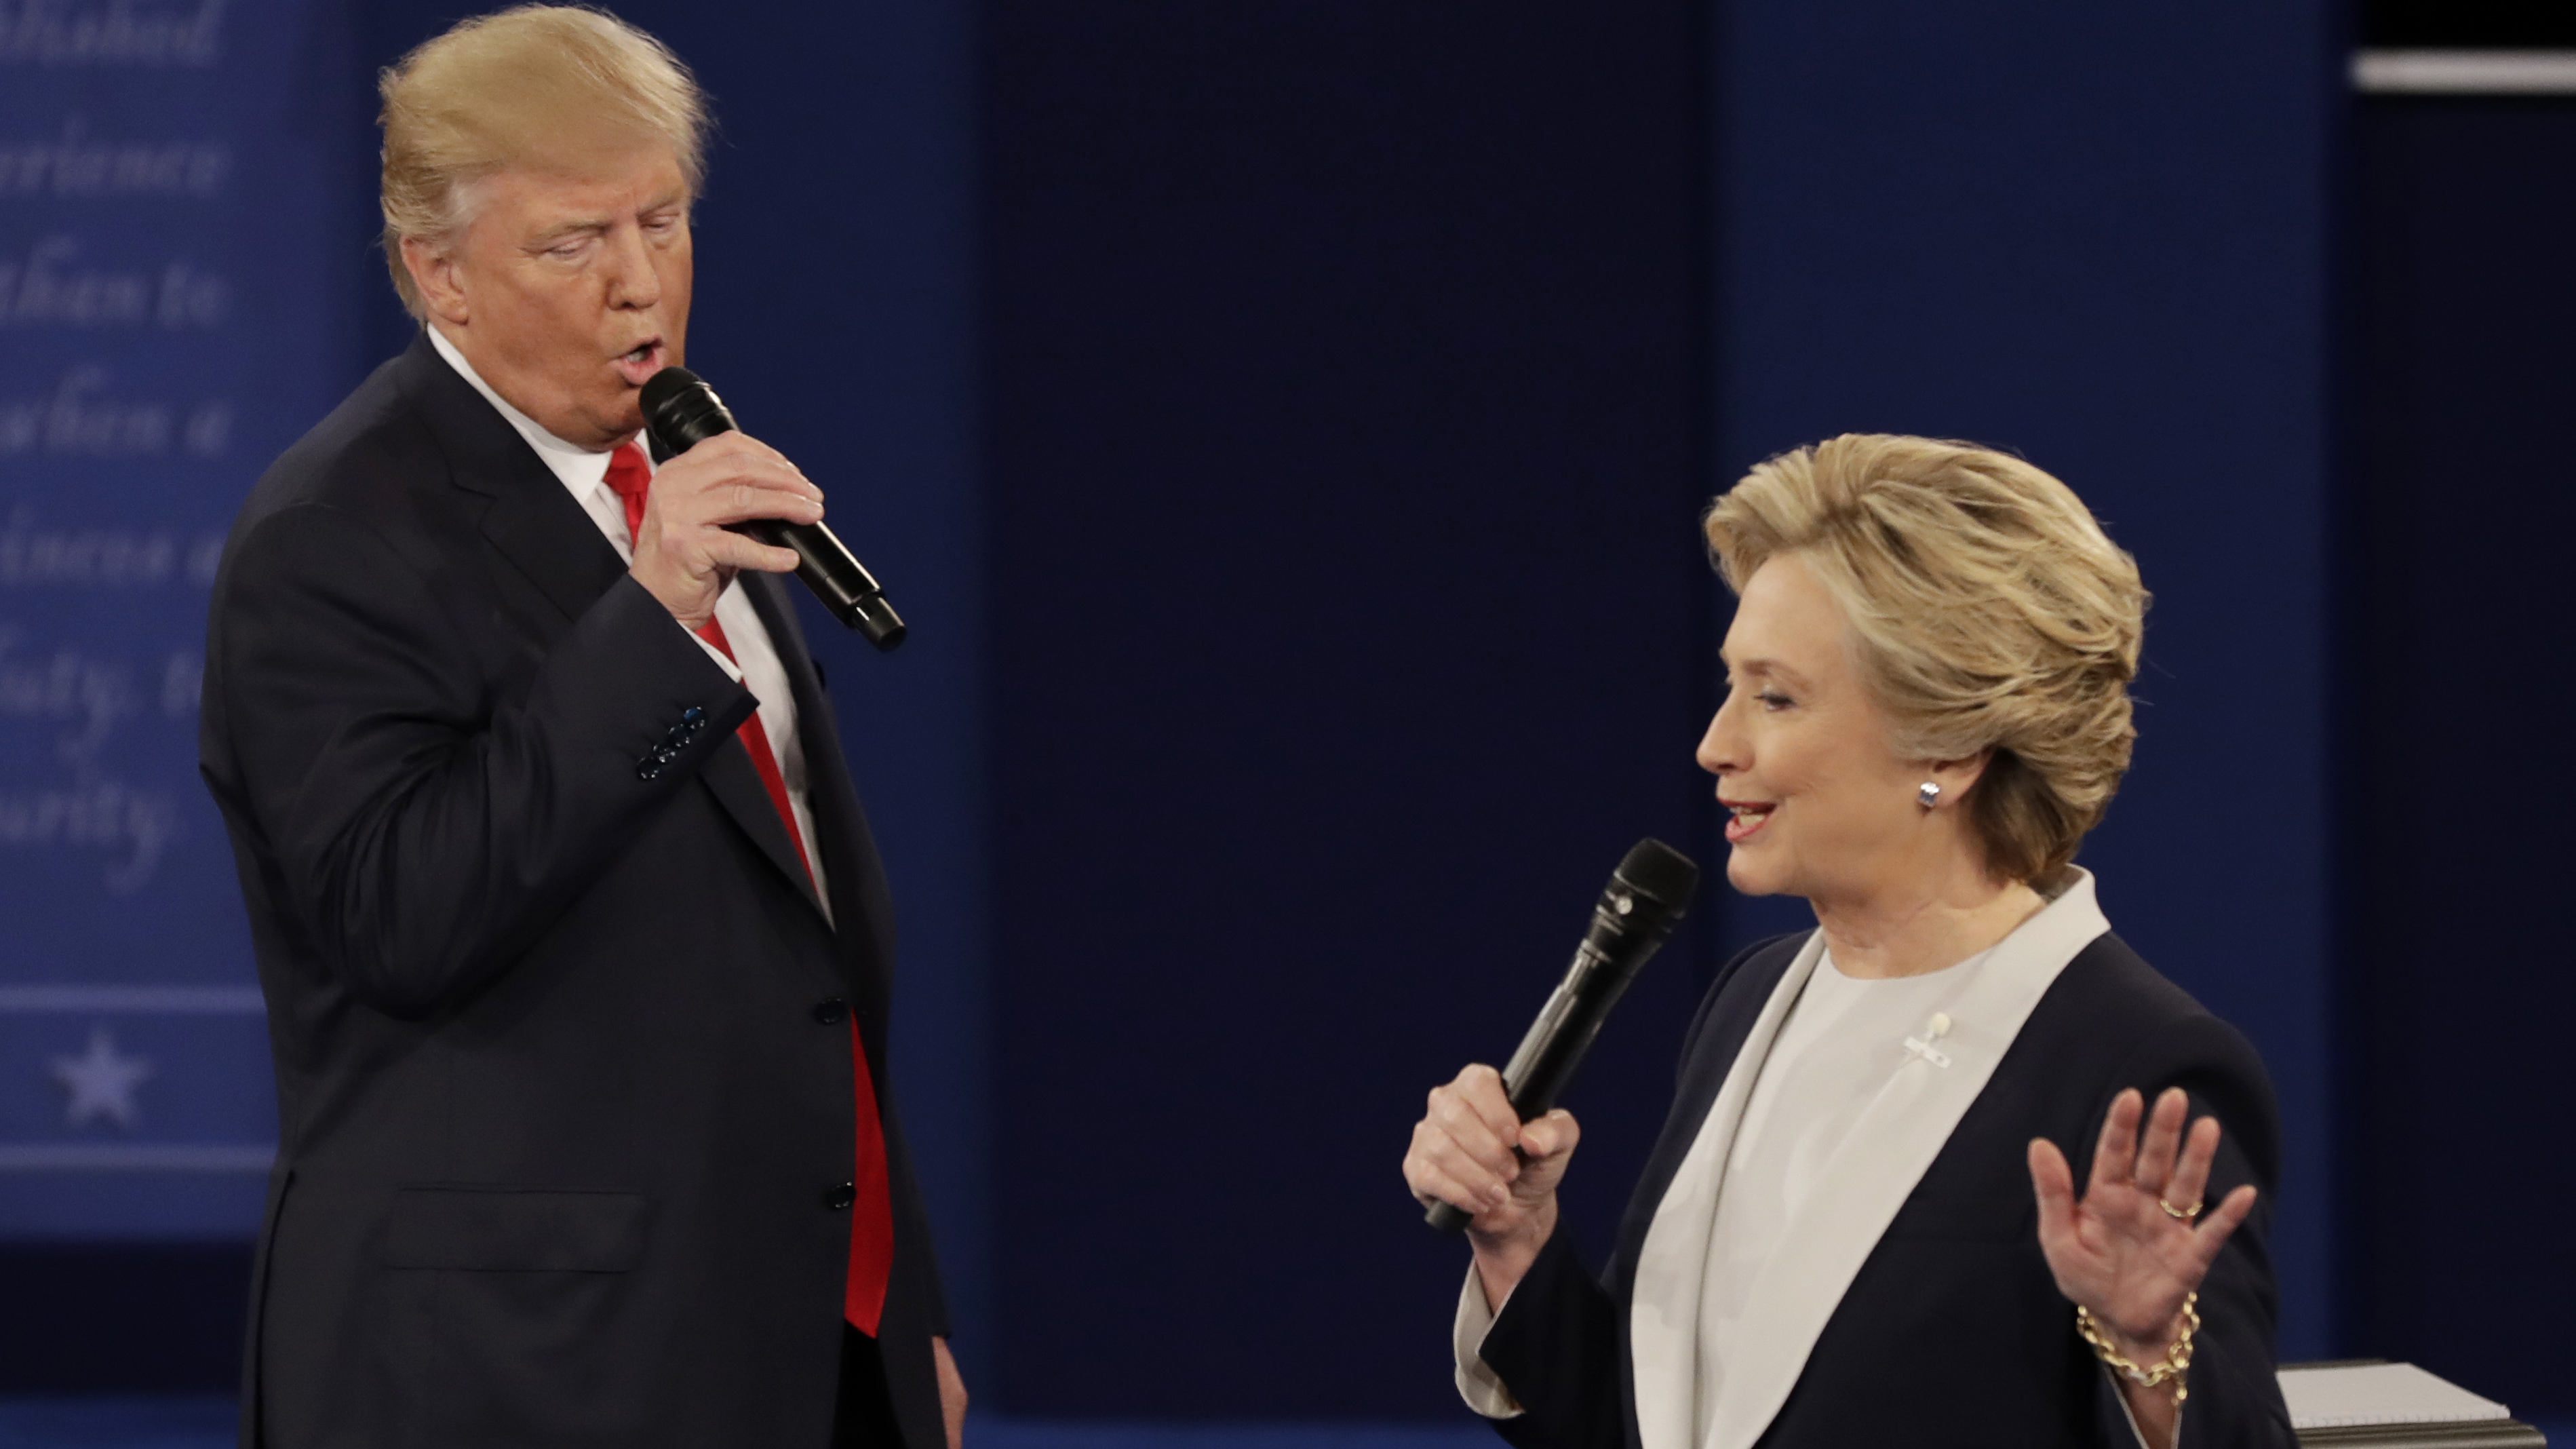 Trump asked Russia to find Hillary Clinton emails same day they hacked affiliated emails photo